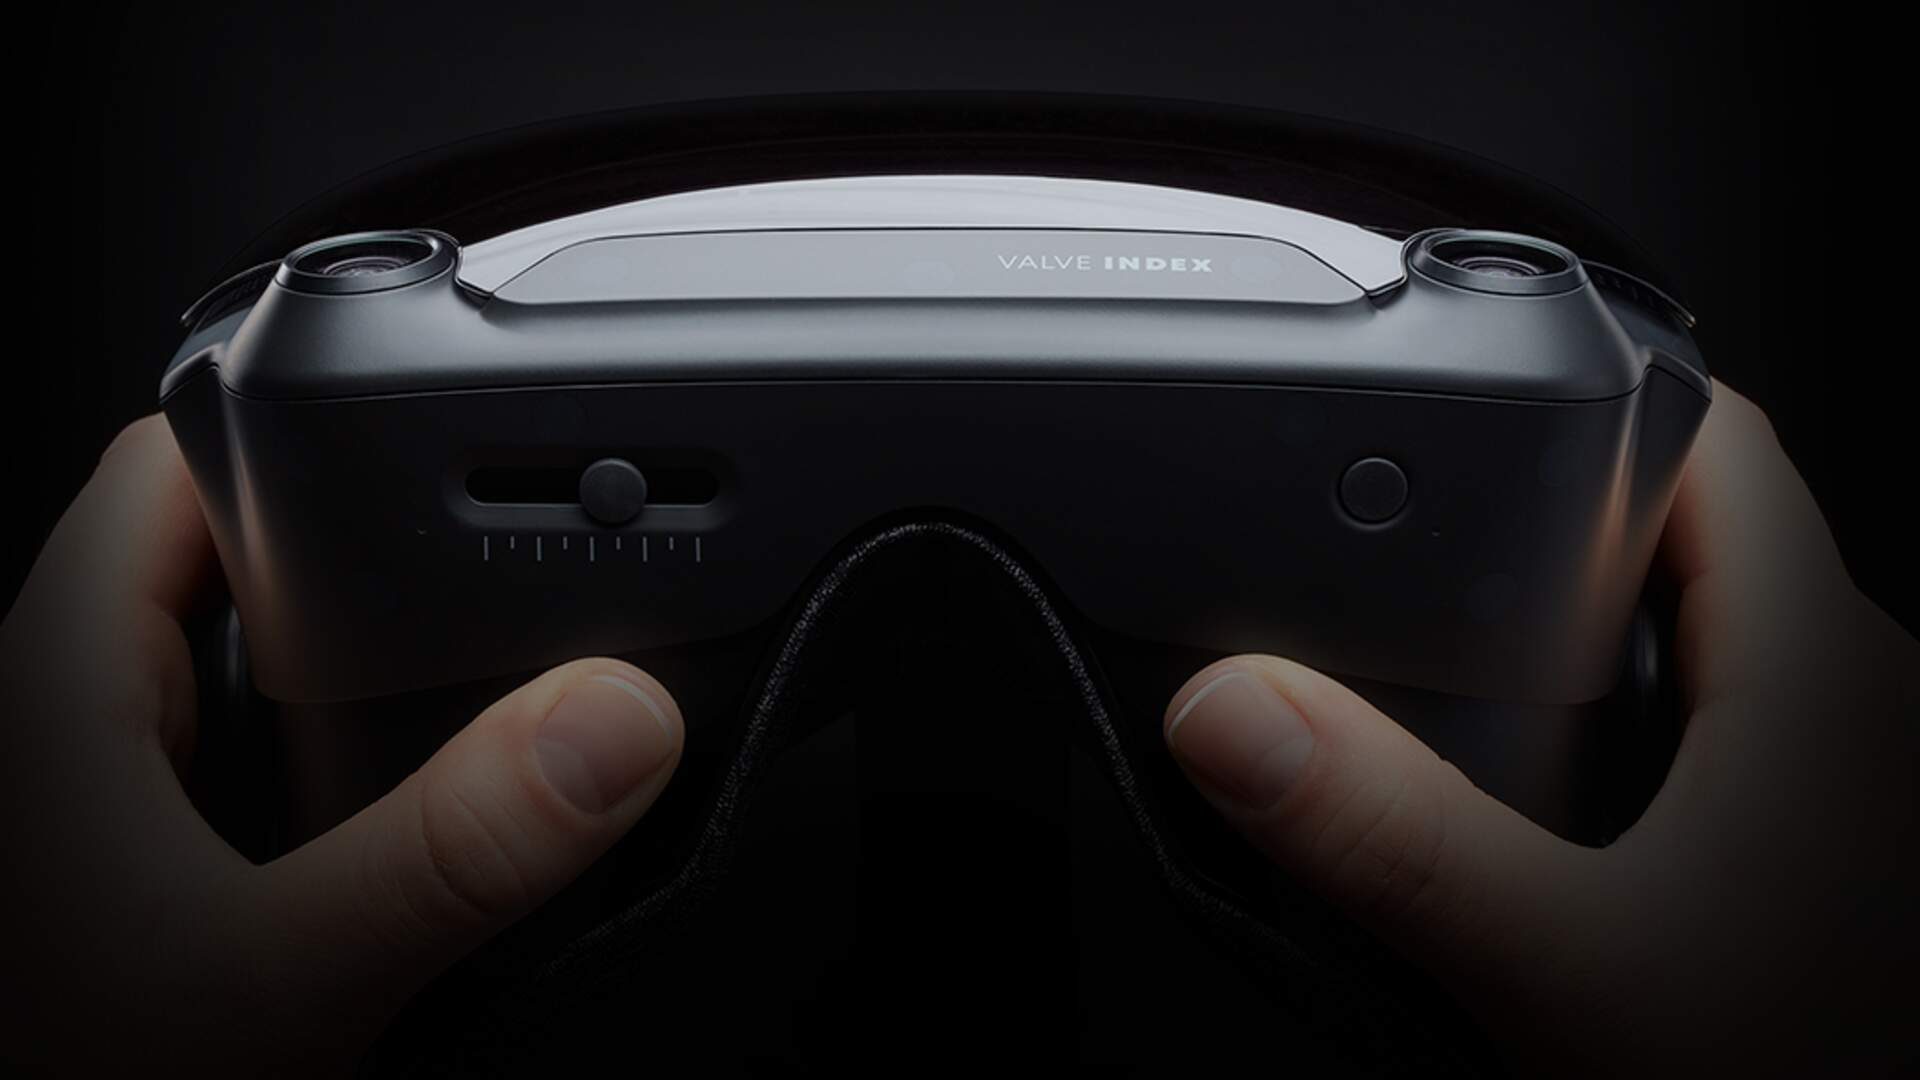 Valve Teases Its Own VR Headset, The Valve Index